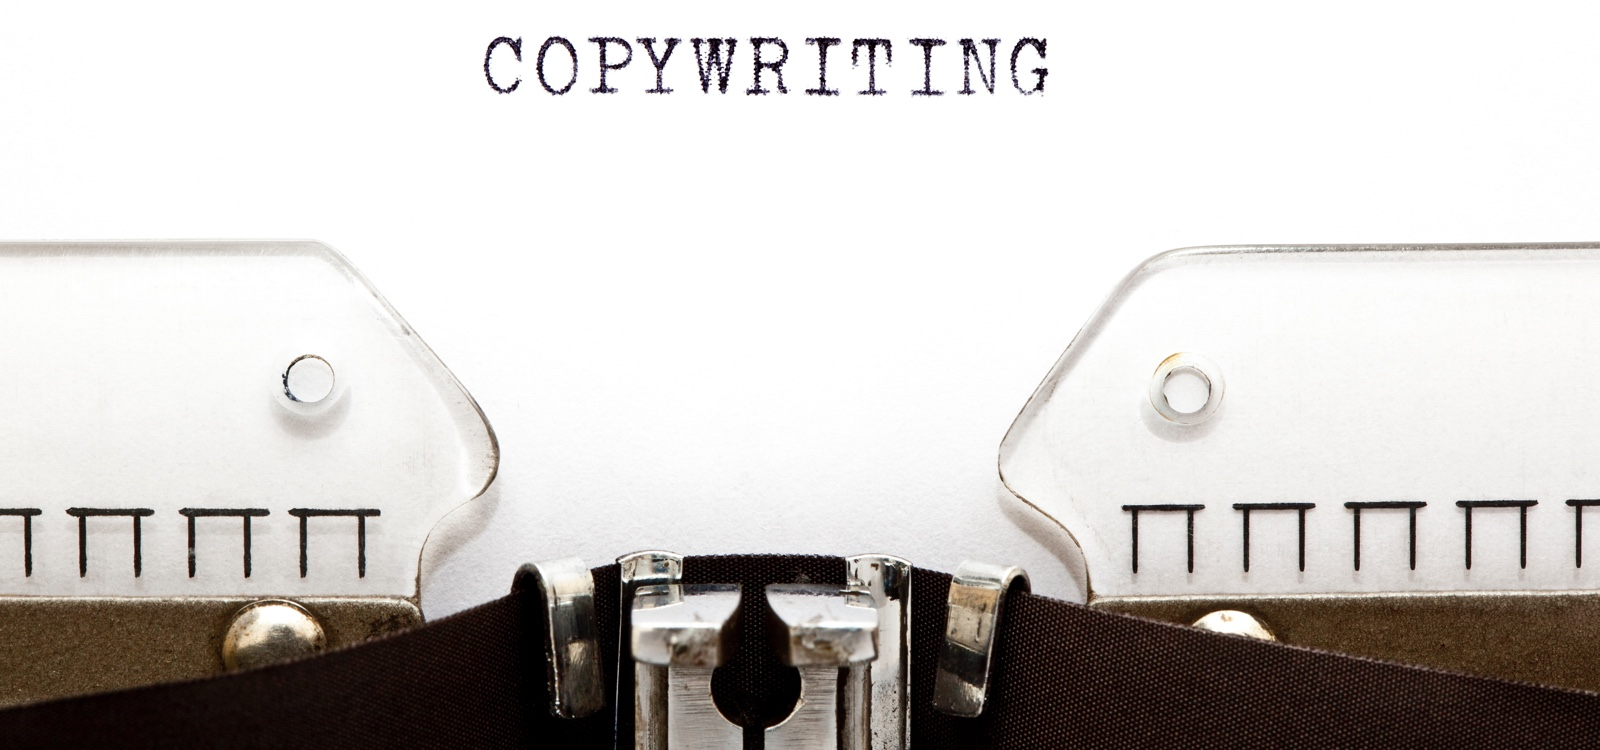 https://www.copydoctor.com.au/newlook/copywriting-services/